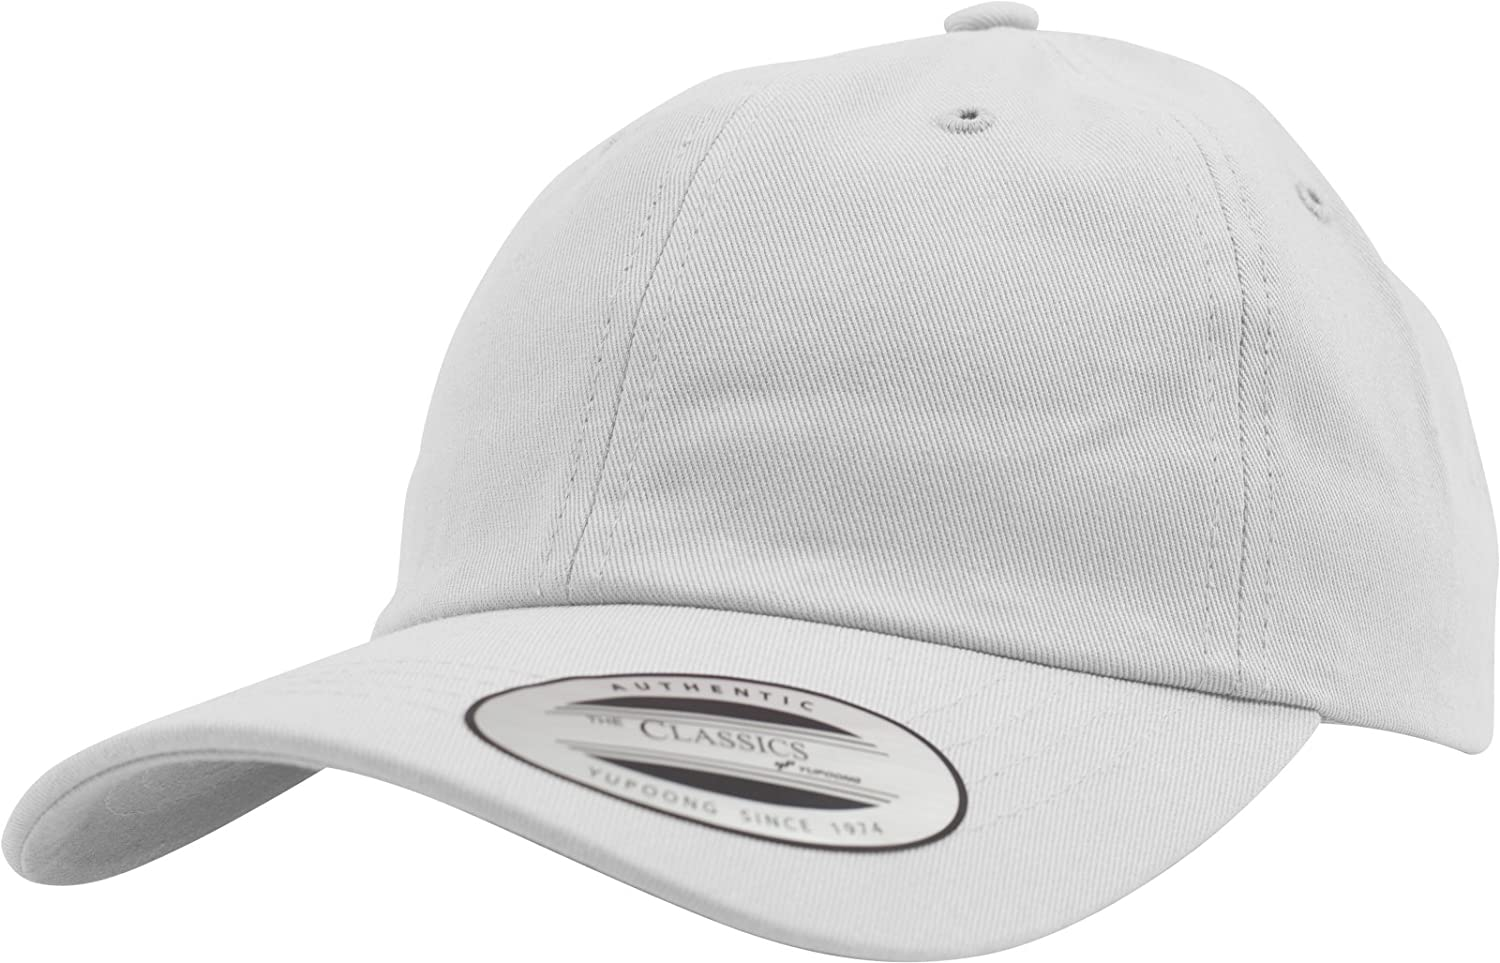 a239d5ed239 Flexfit Yupoong KIDS Low Profile Cotton Twill Strapback Dad Cap Adjustable  White  Amazon.ca  Clothing   Accessories